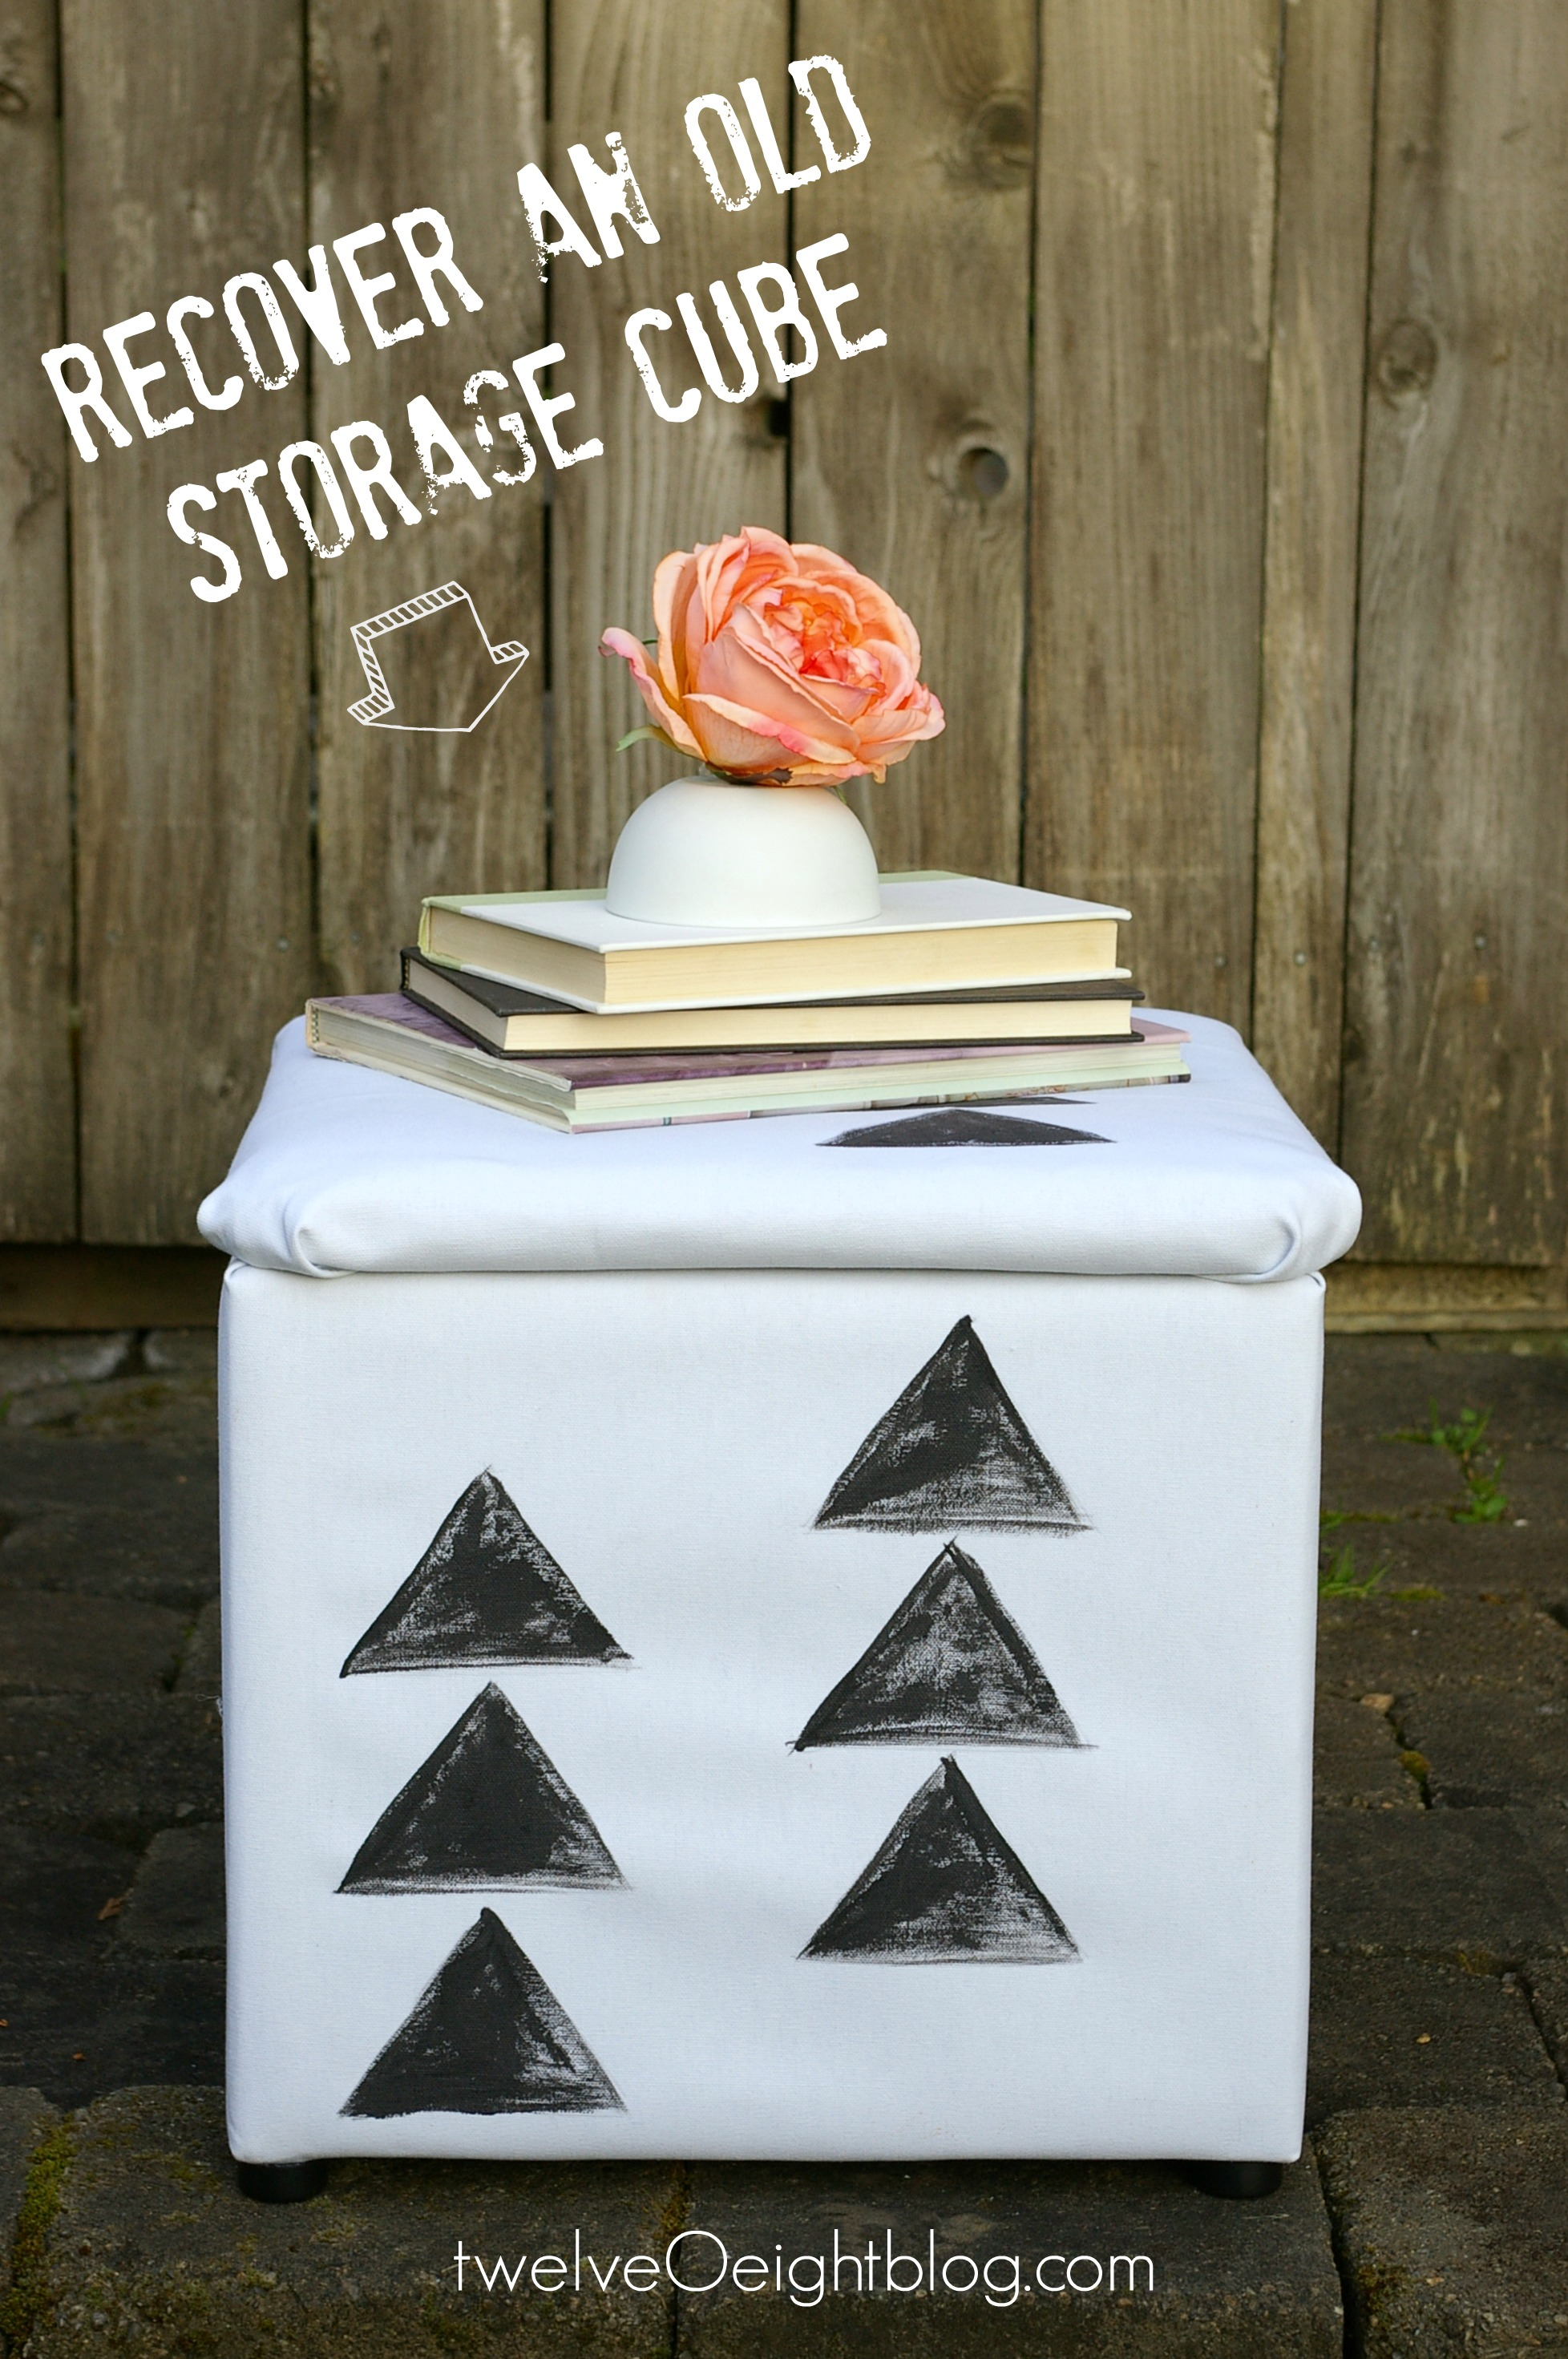 How to recover an old storage cube twelveOeightblog #recover #diy #painted #ottoman & DIY Painted Canvas Pouf-Storage cube-Footstool